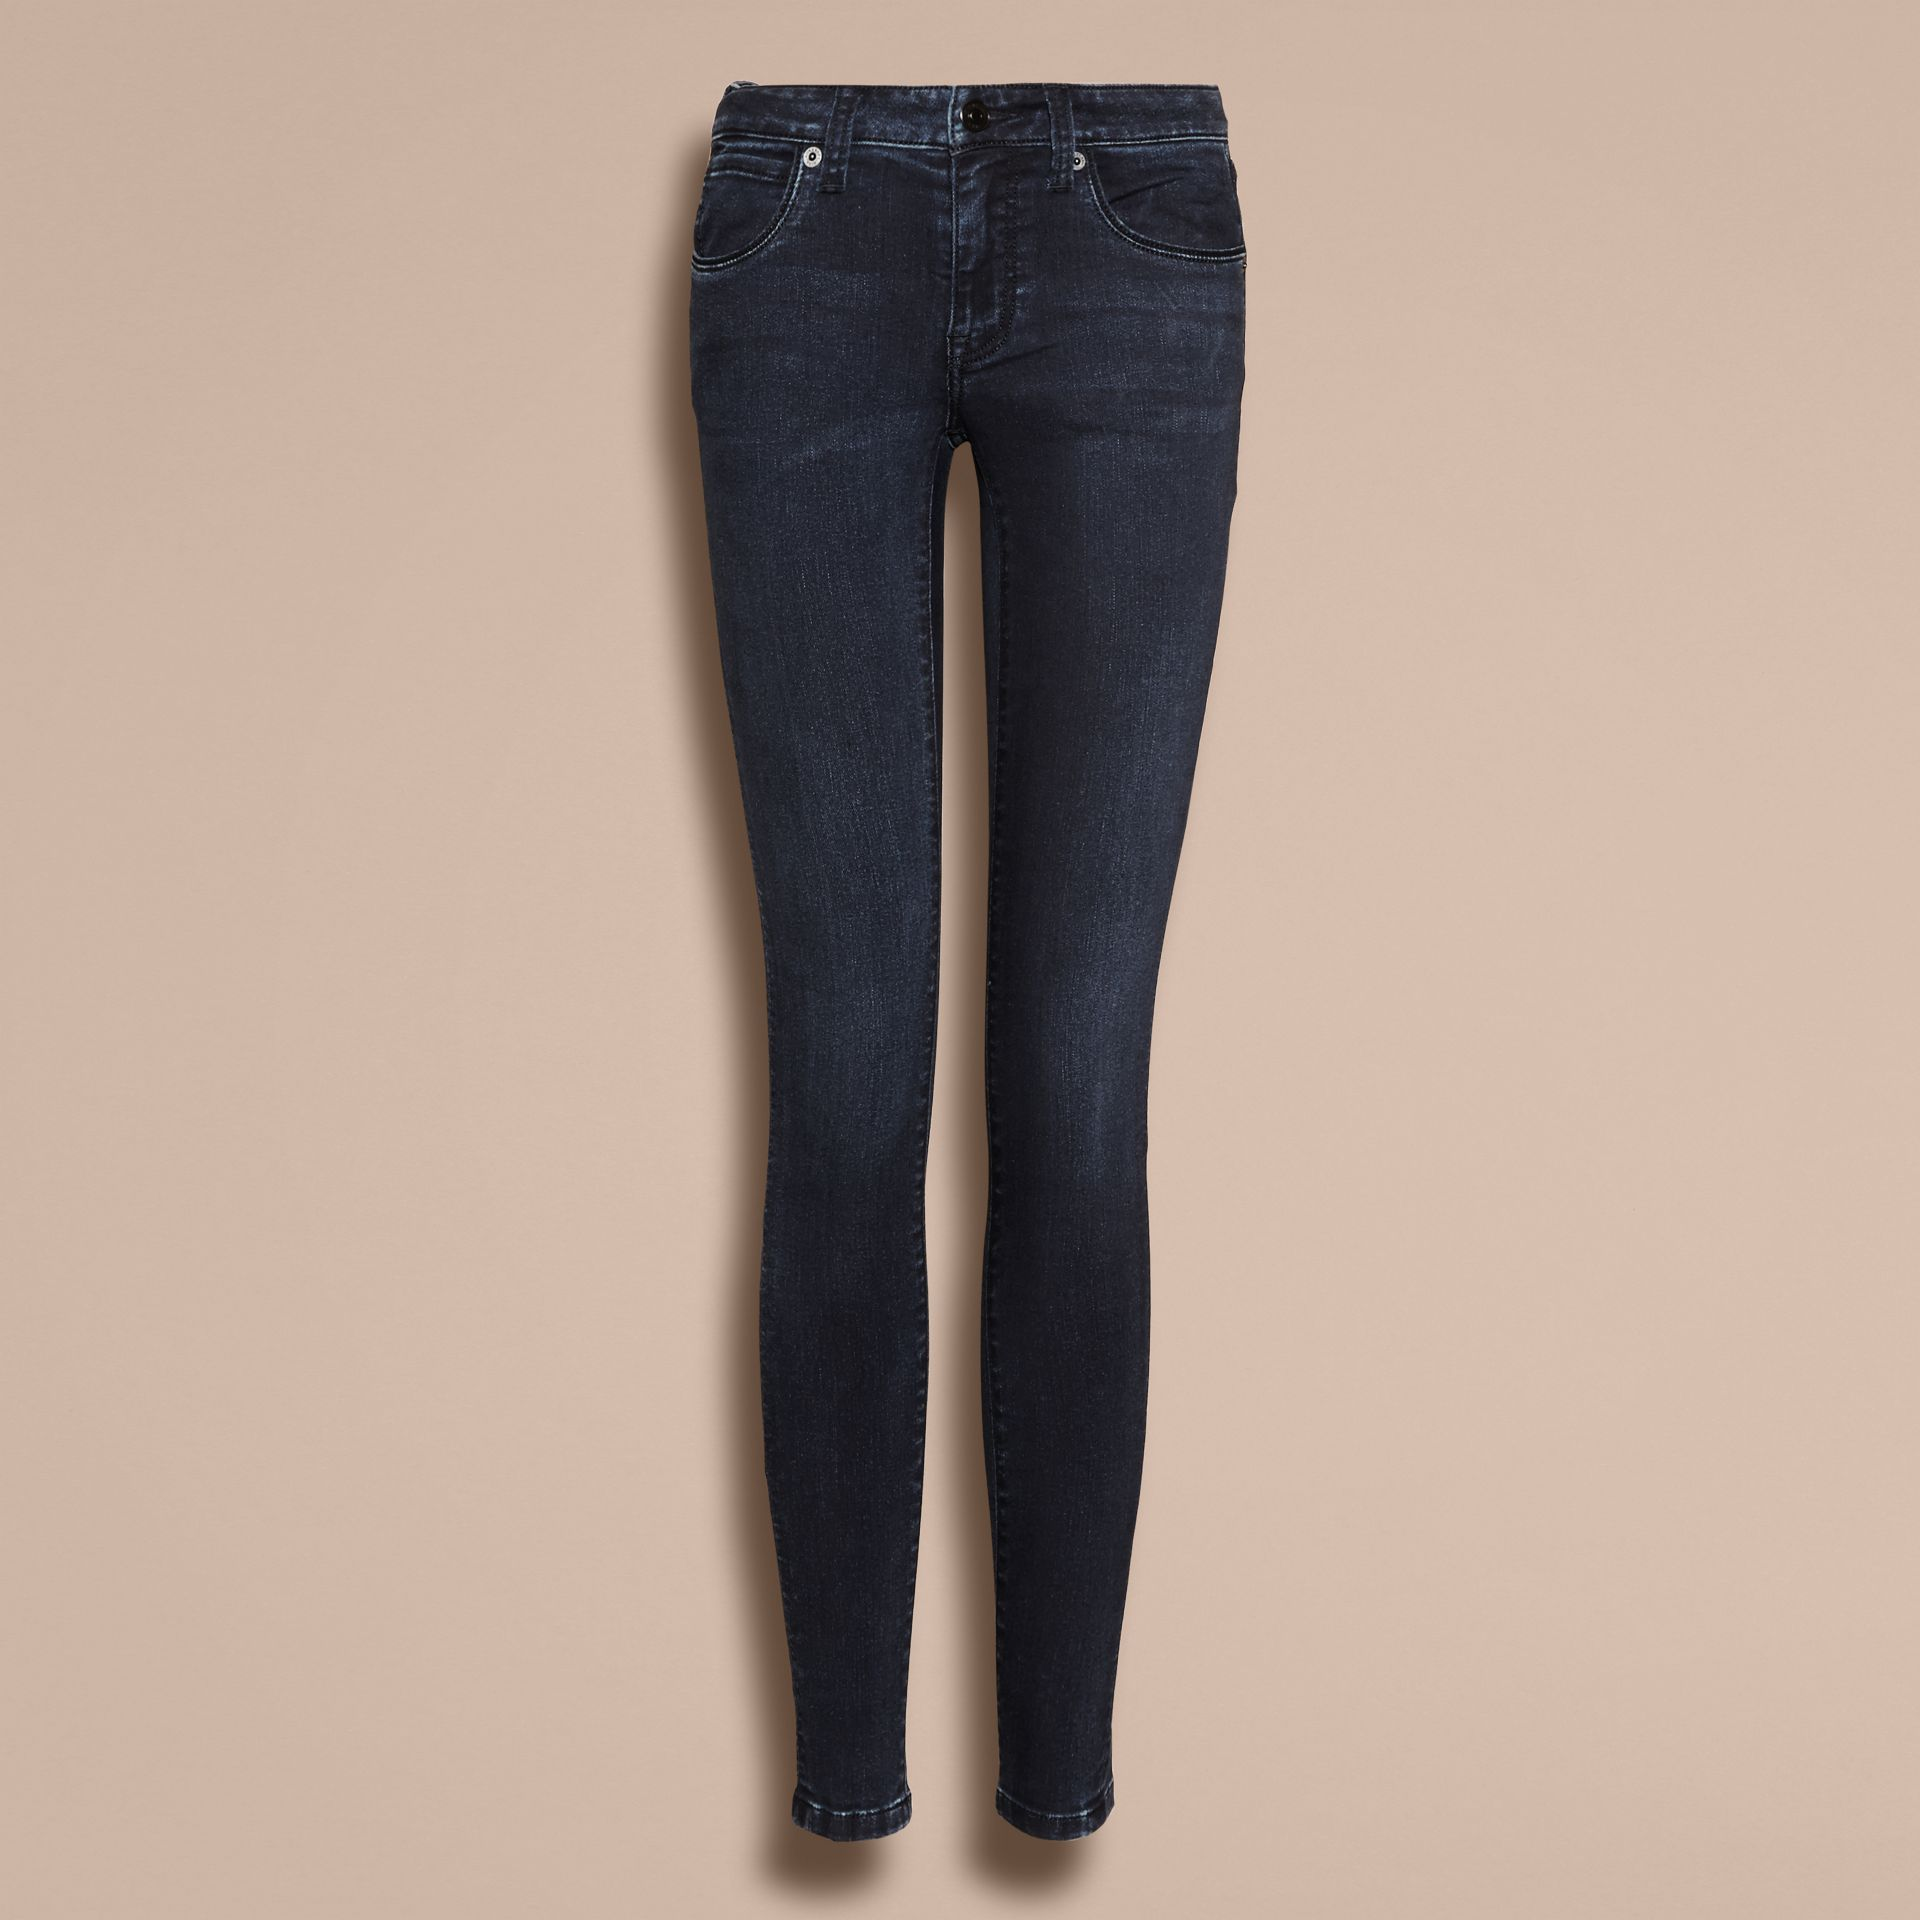 Skinny Fit Power-Stretch Jeans in Dark Indigo - Women | Burberry - gallery image 4